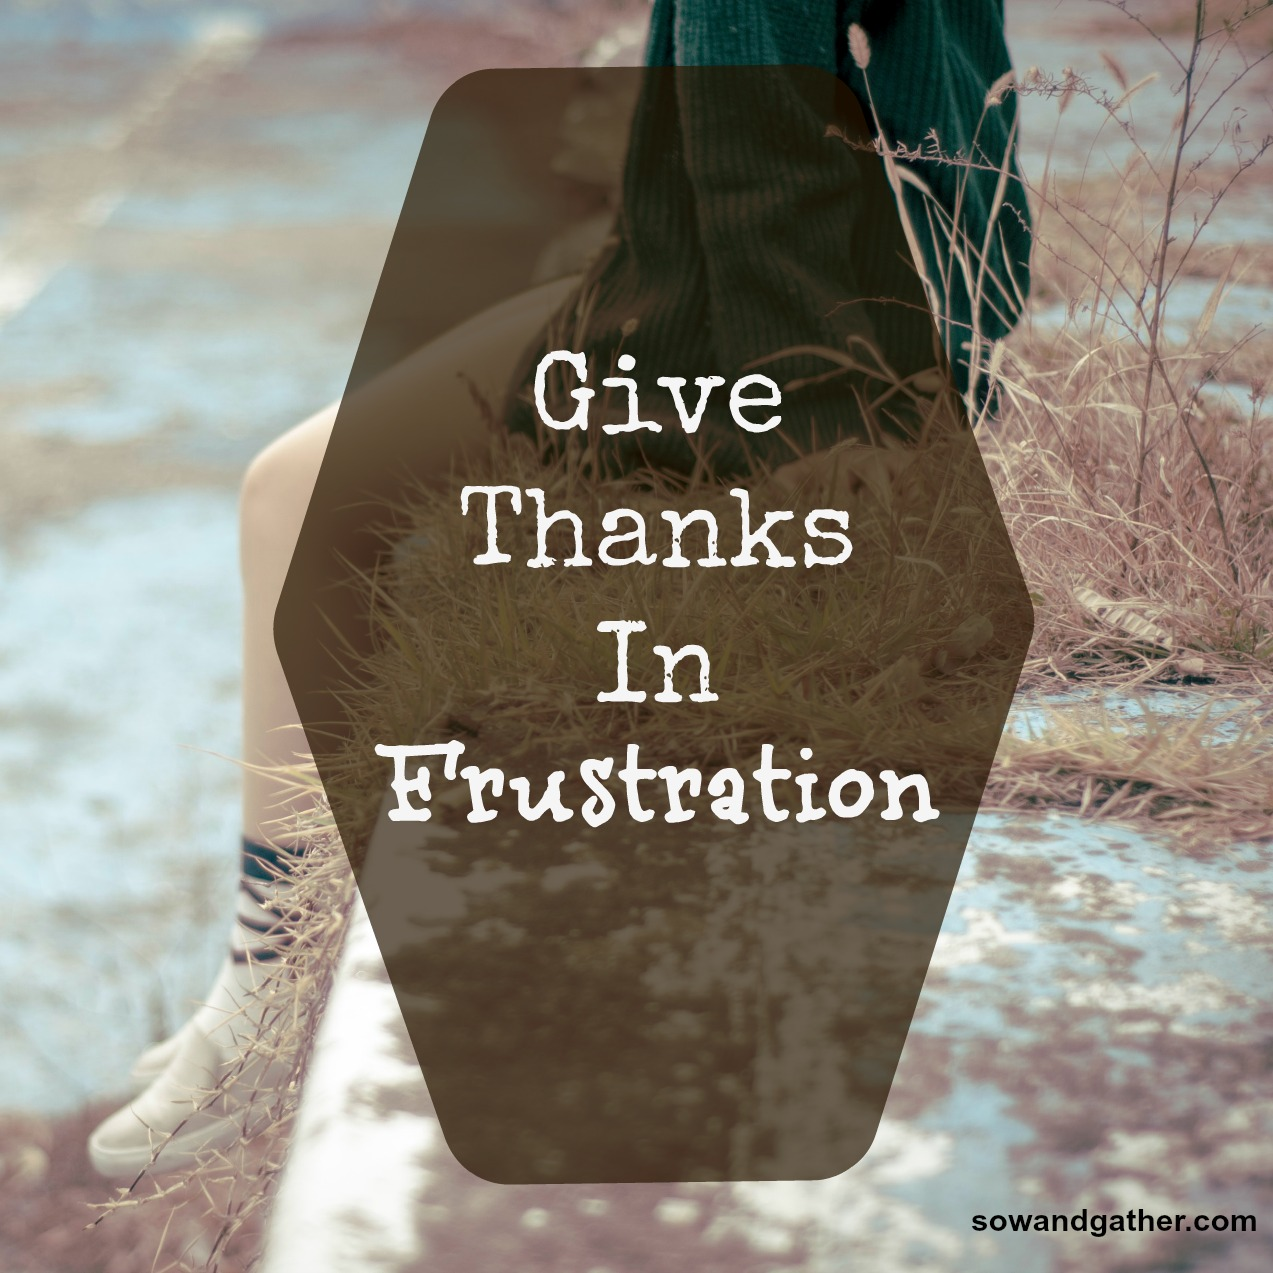 give-thanks-in-frustration-sowandgather.com